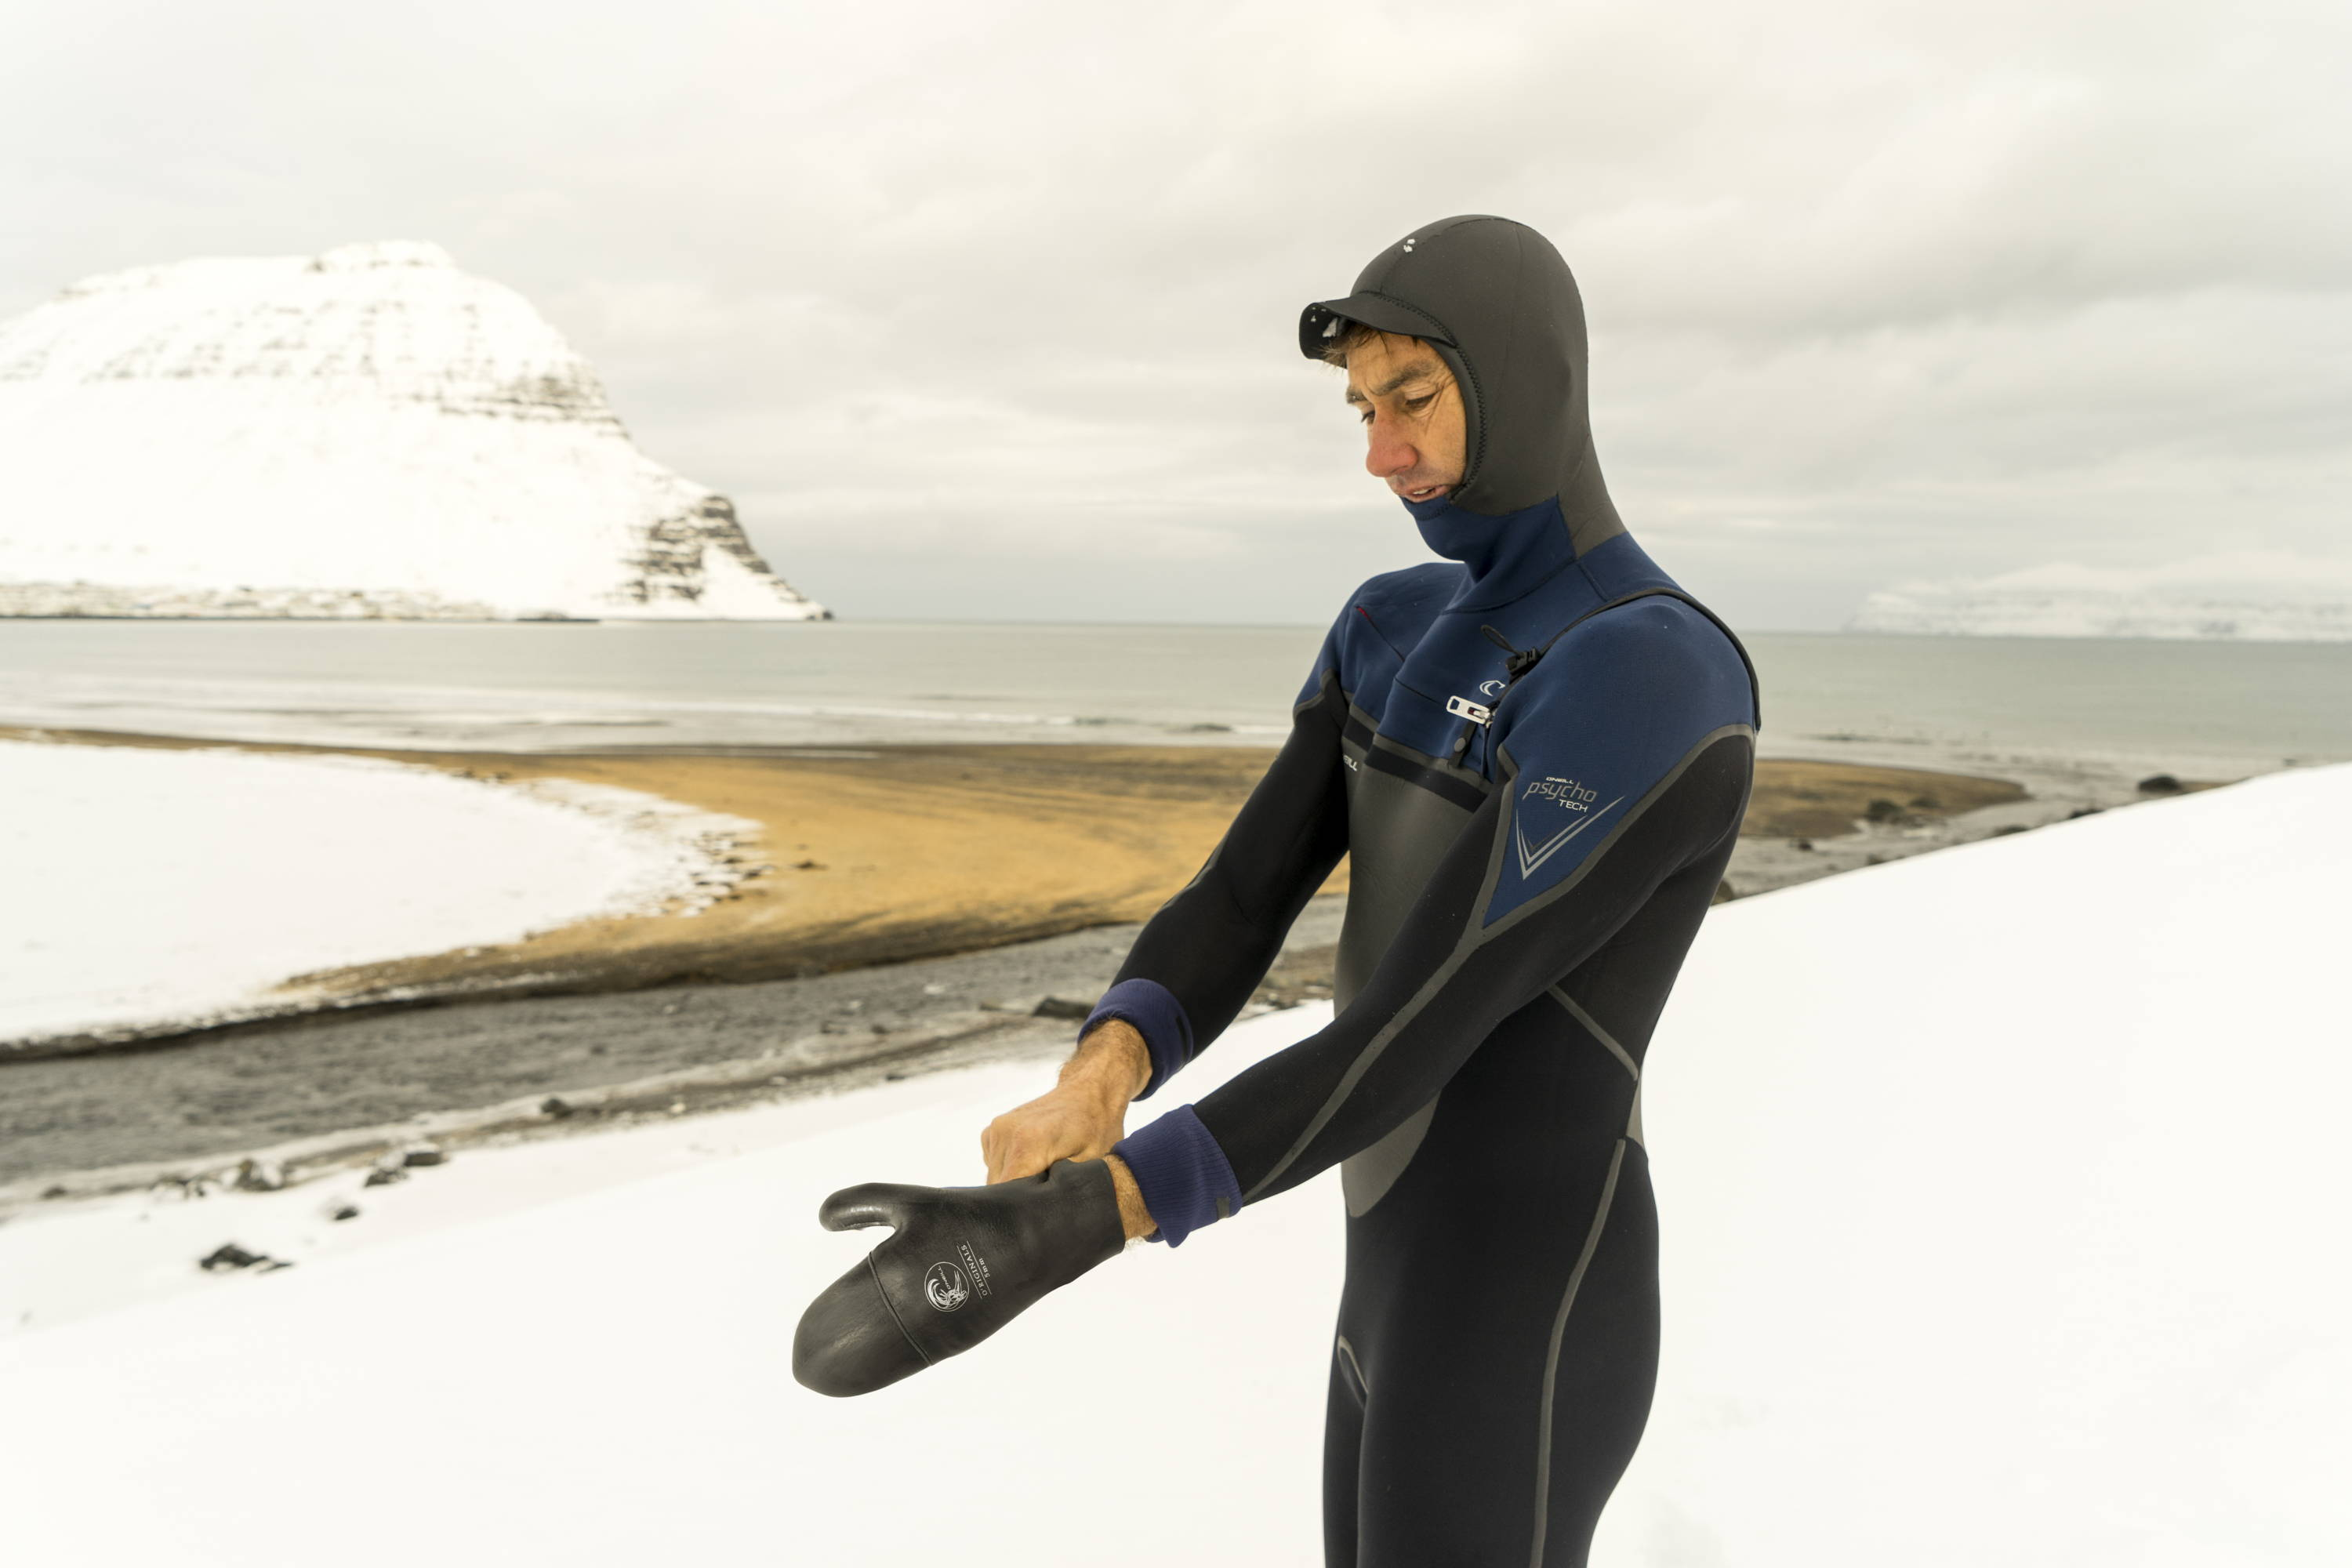 Soli Baily: Psycho wetsuit